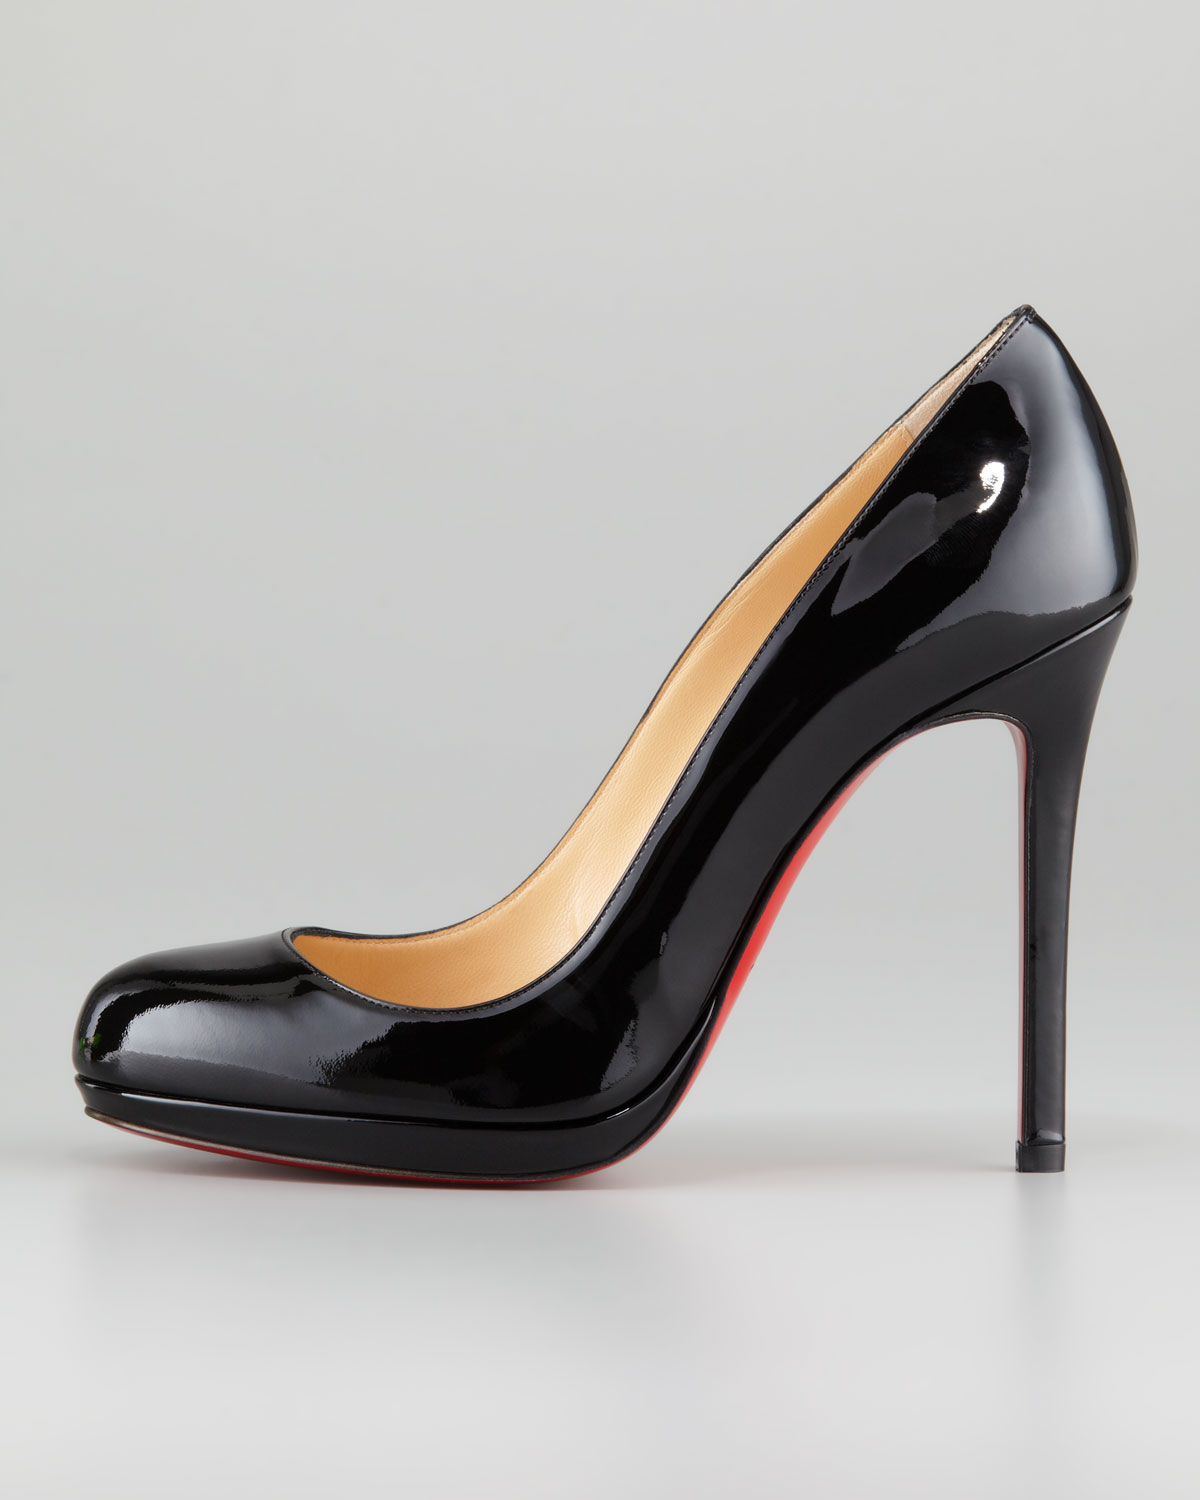 87cd74dce281 Lyst - Christian Louboutin Neofilo Patent Roundtoe Red Sole Pump in ...